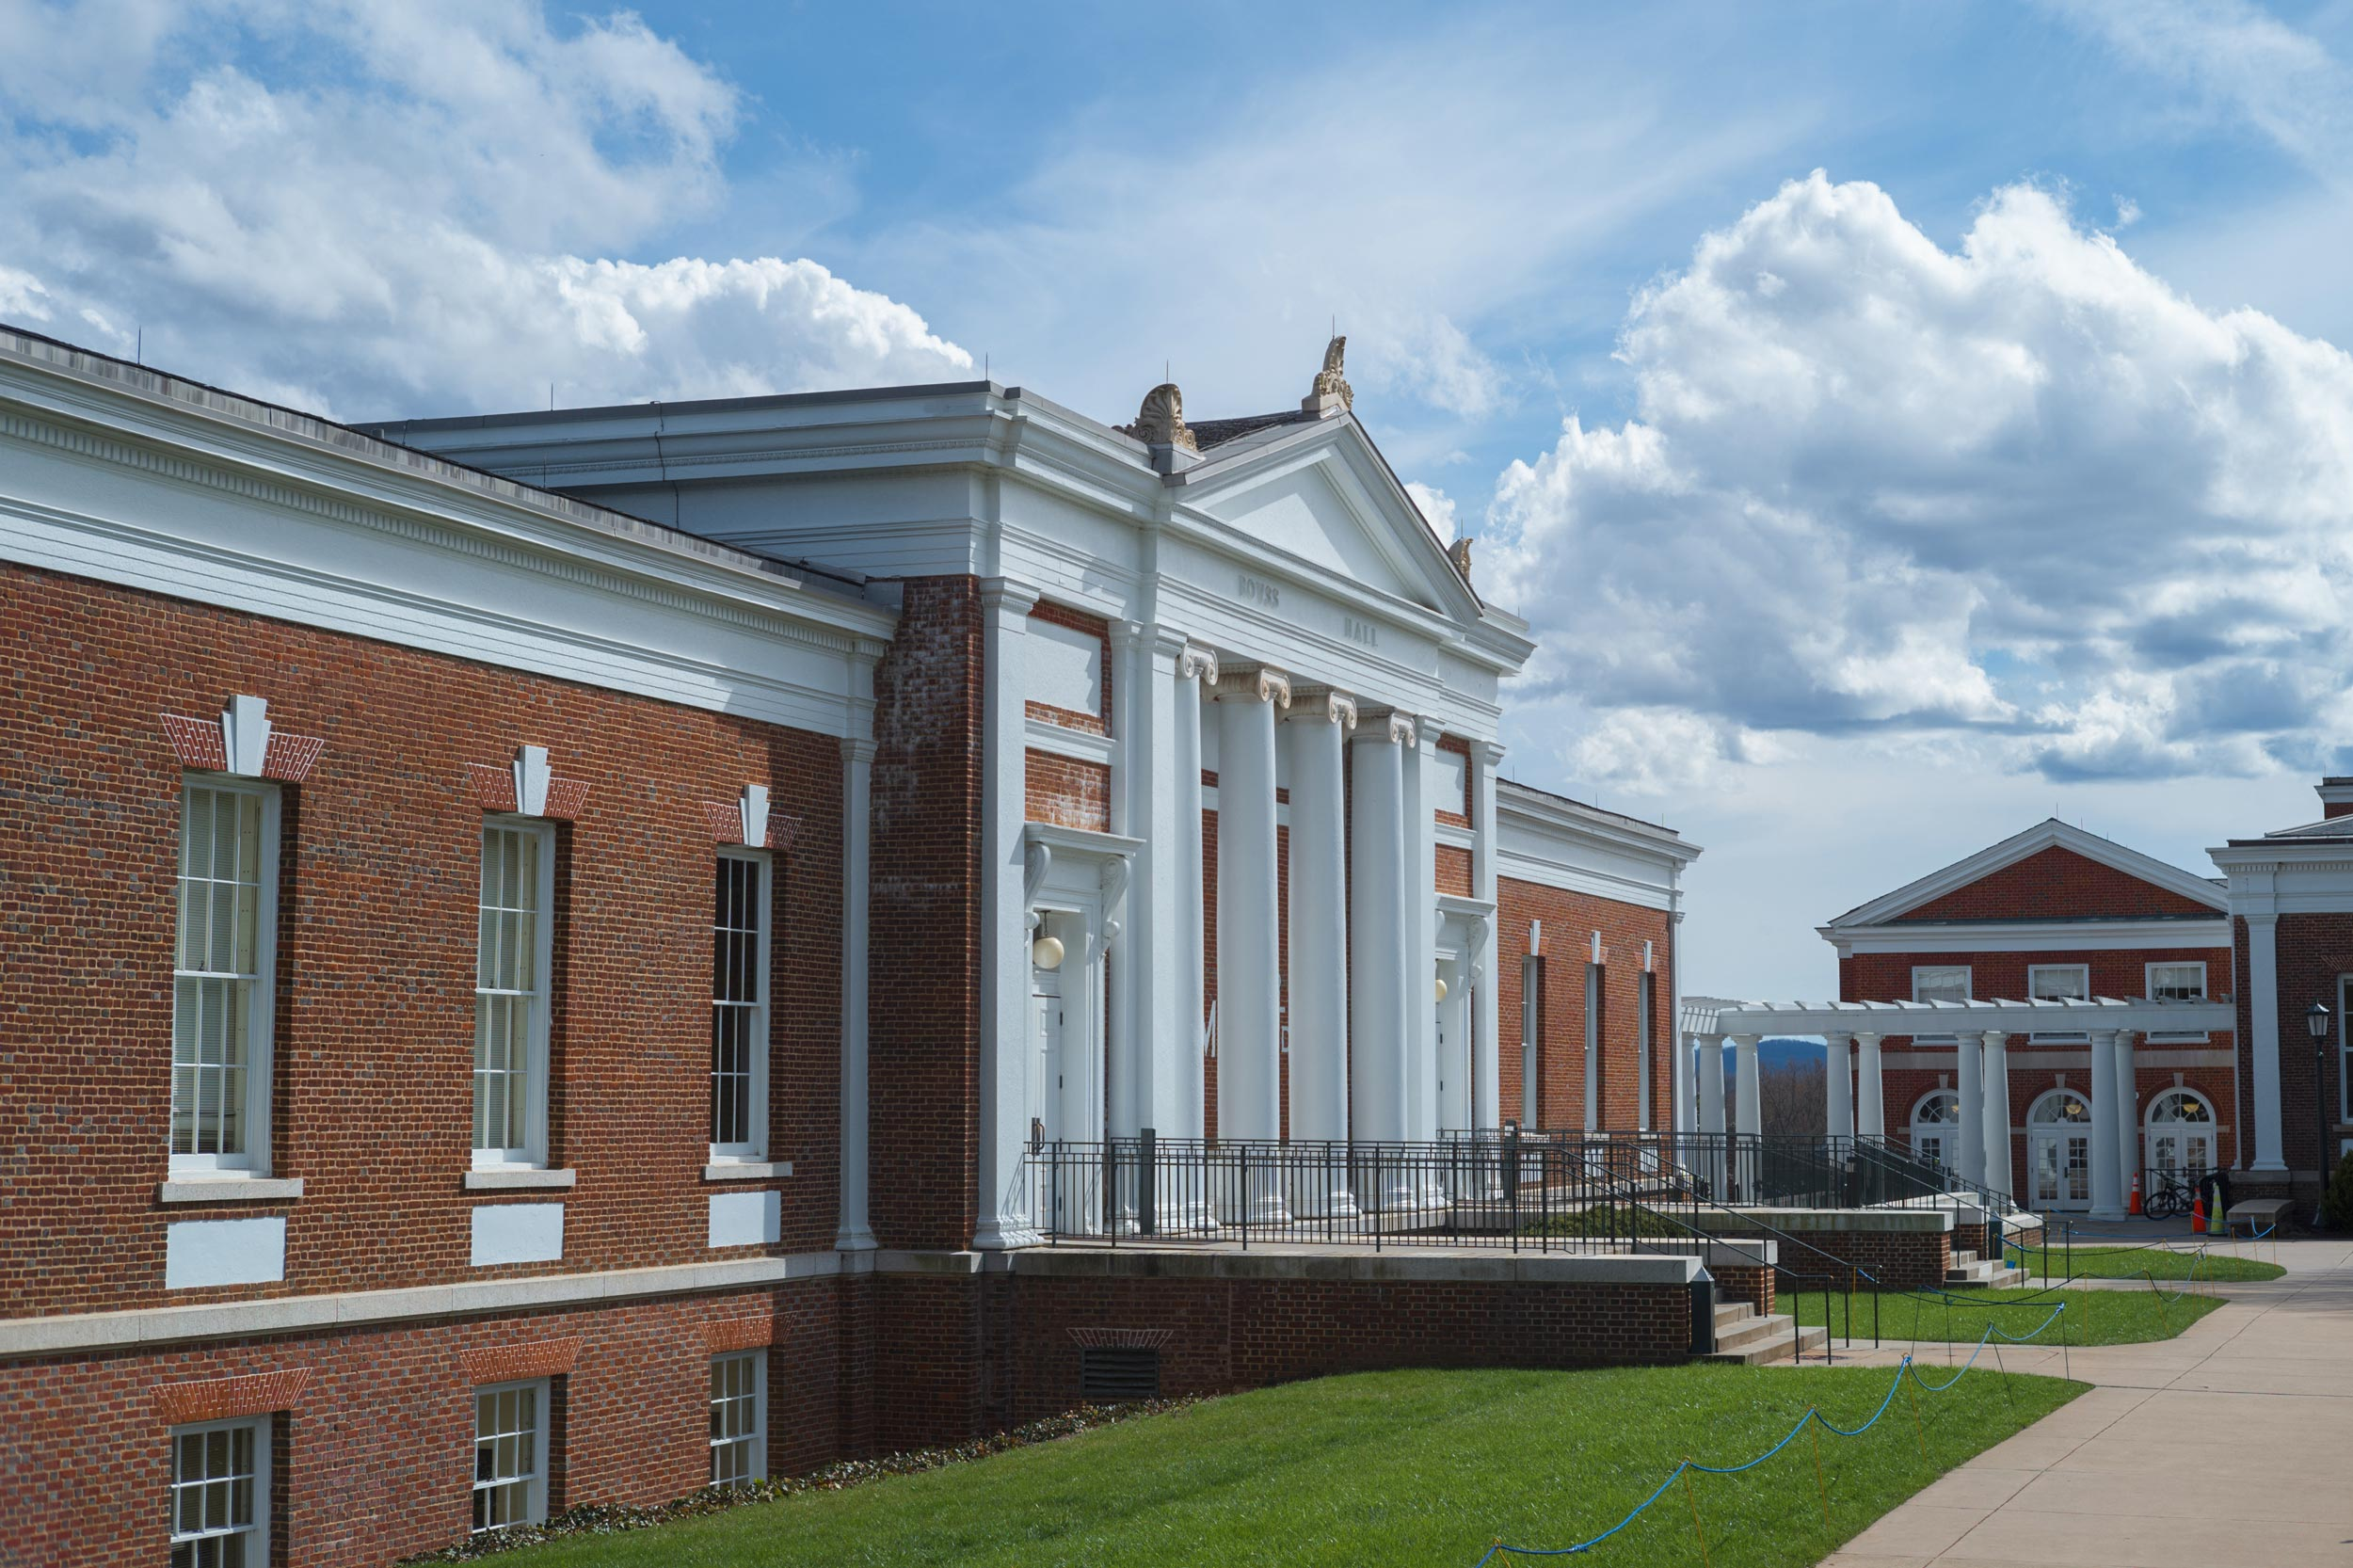 Business Website Names McIntire School of Commerce 'B-School of the Year'